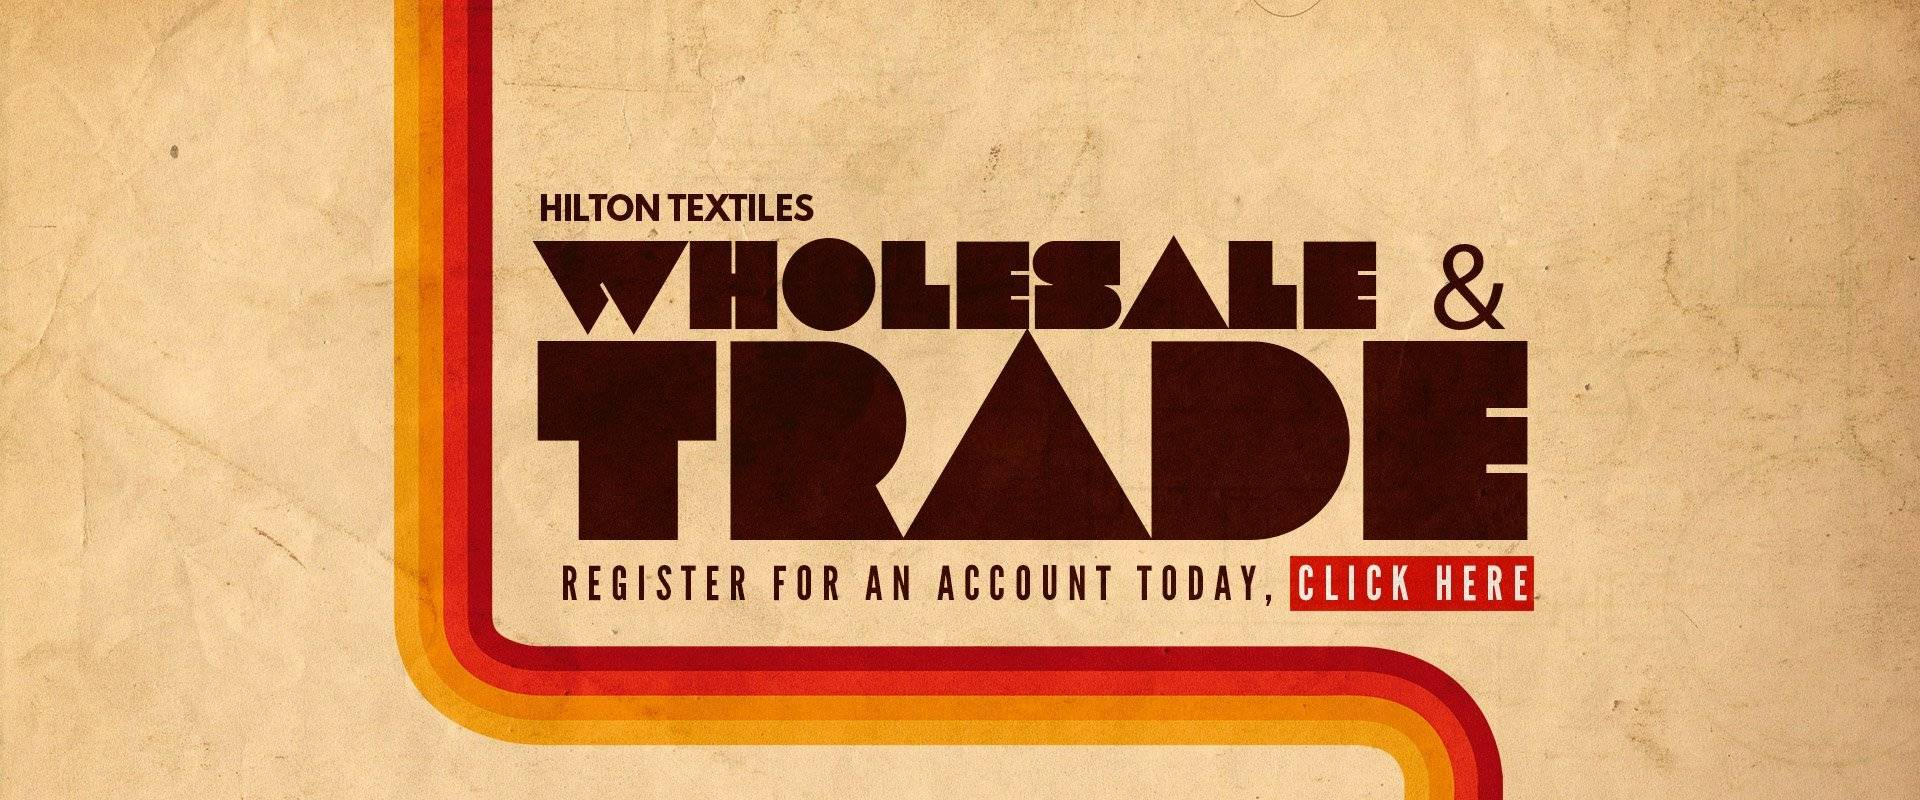 setup a wholesale account with hilton textiles. click here